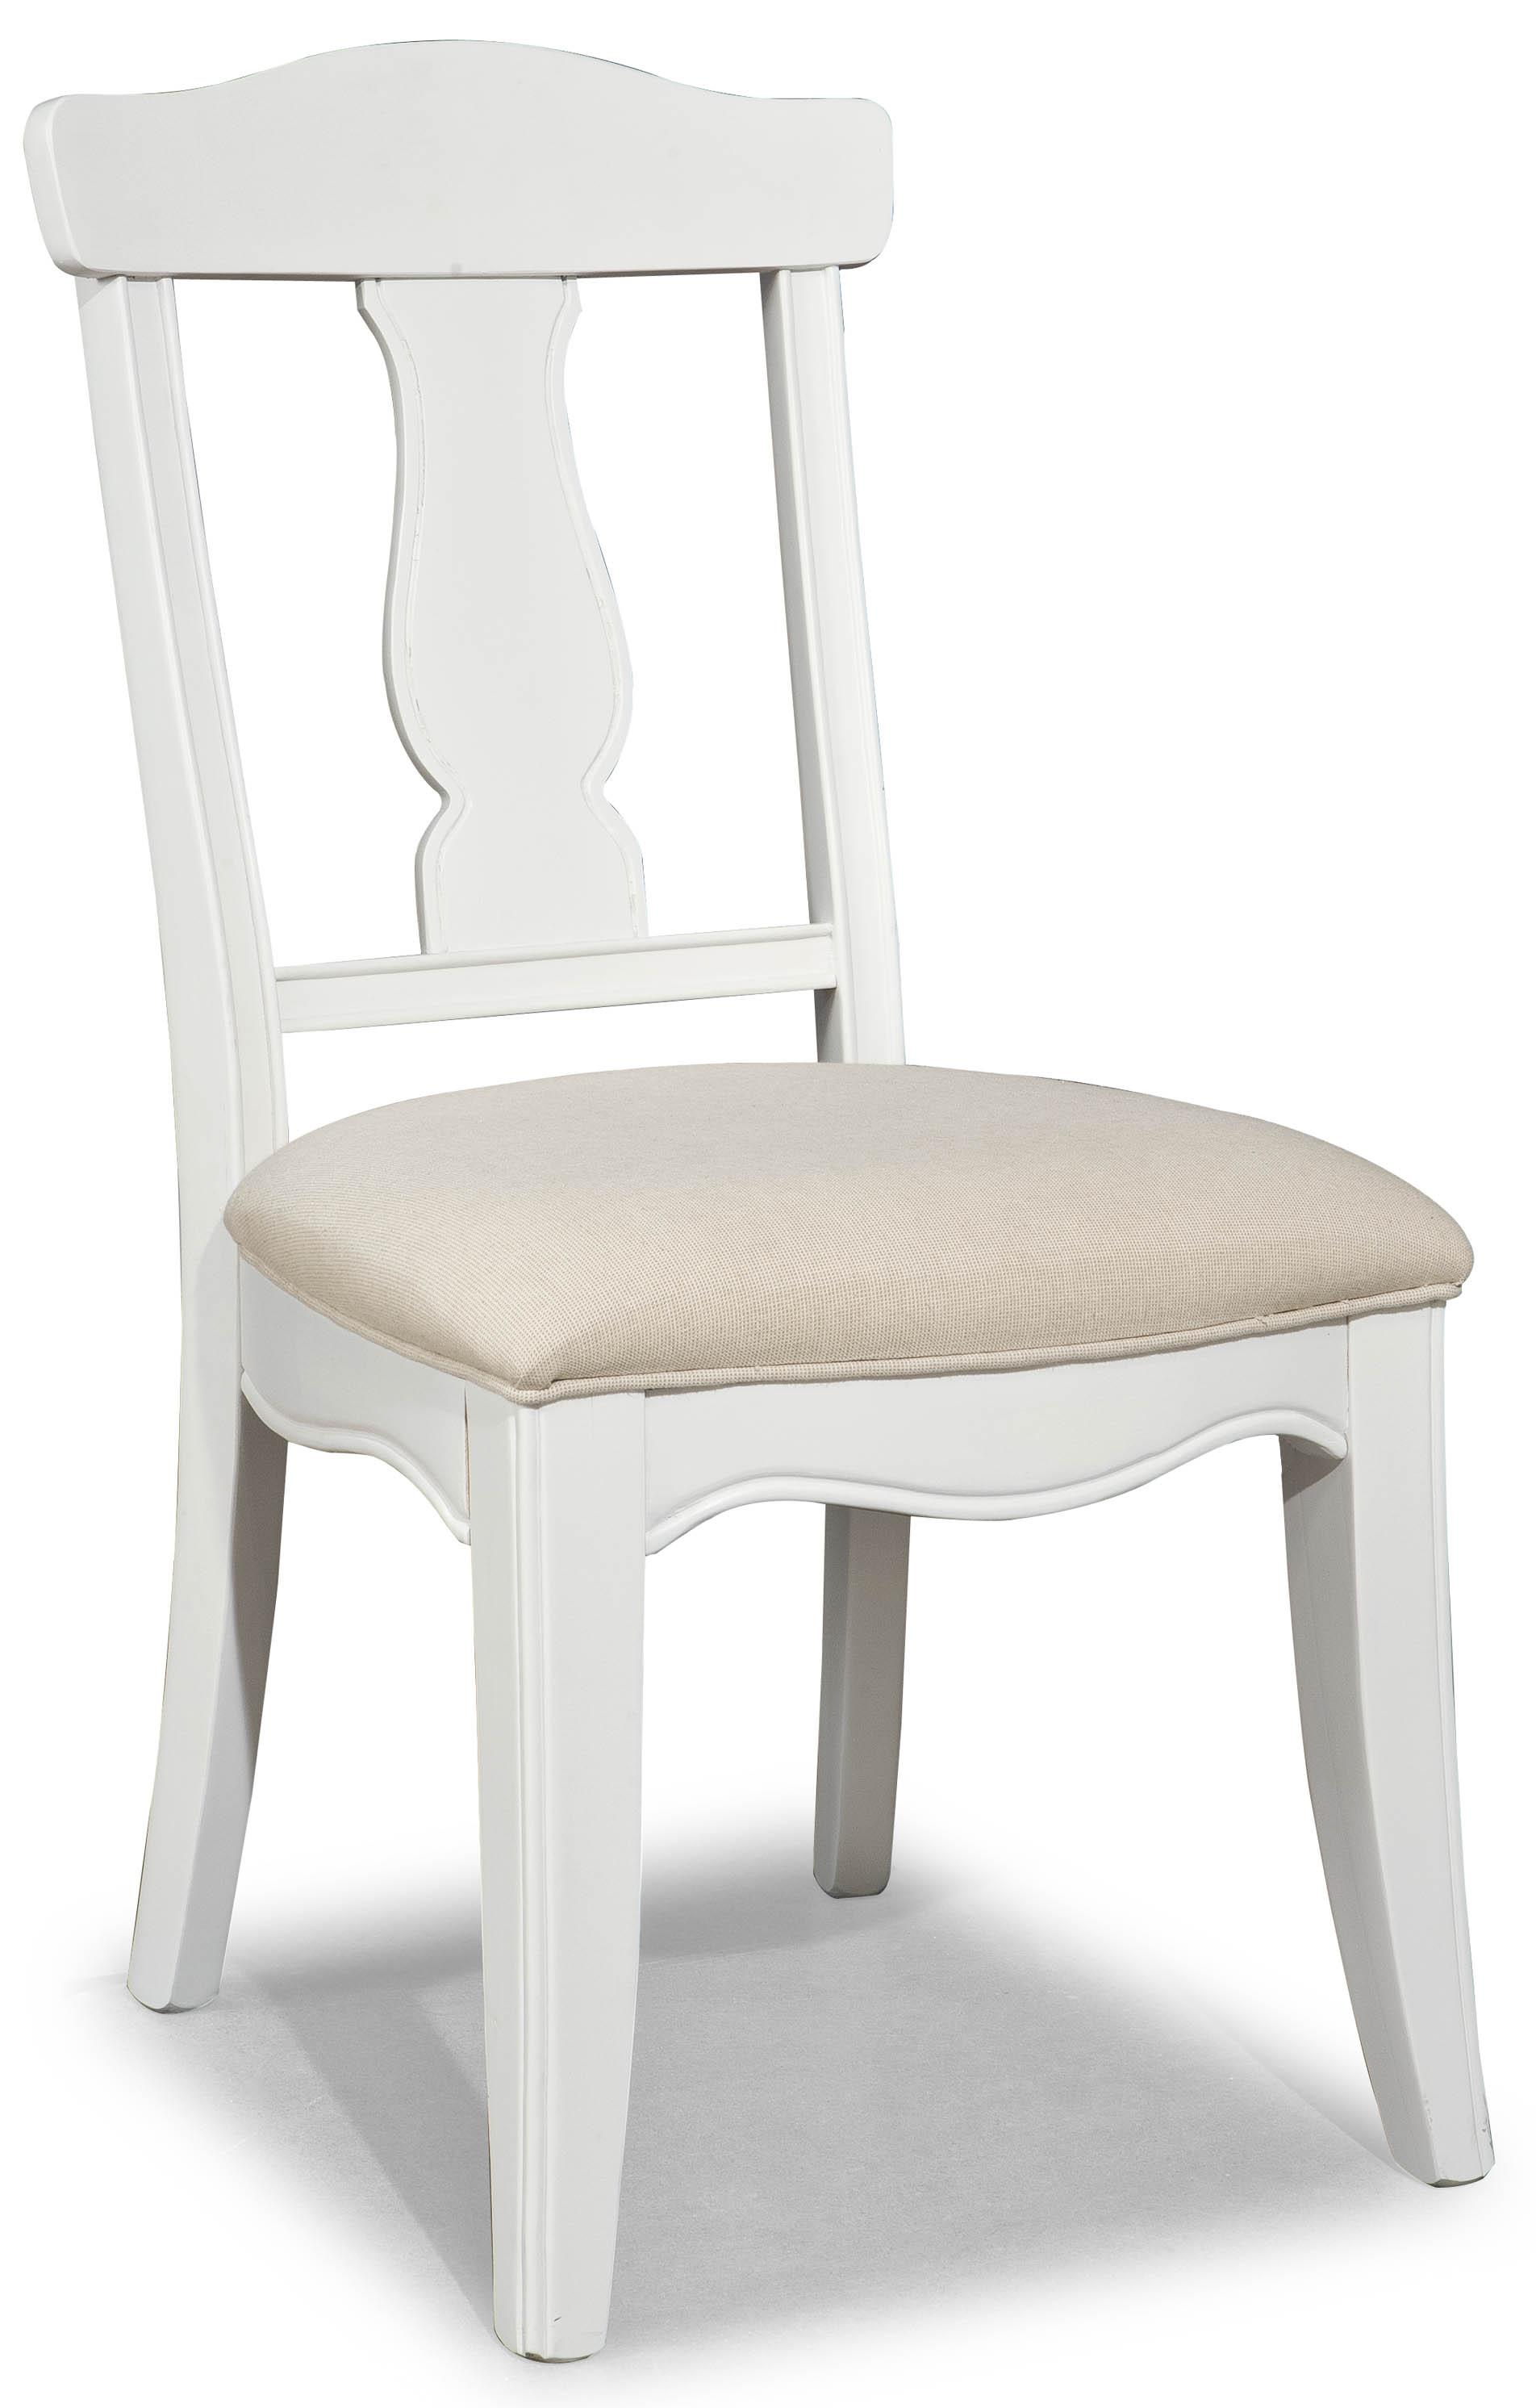 Legacy Classic Kids Madison Desk Chair - Item Number: 2830-640 KD